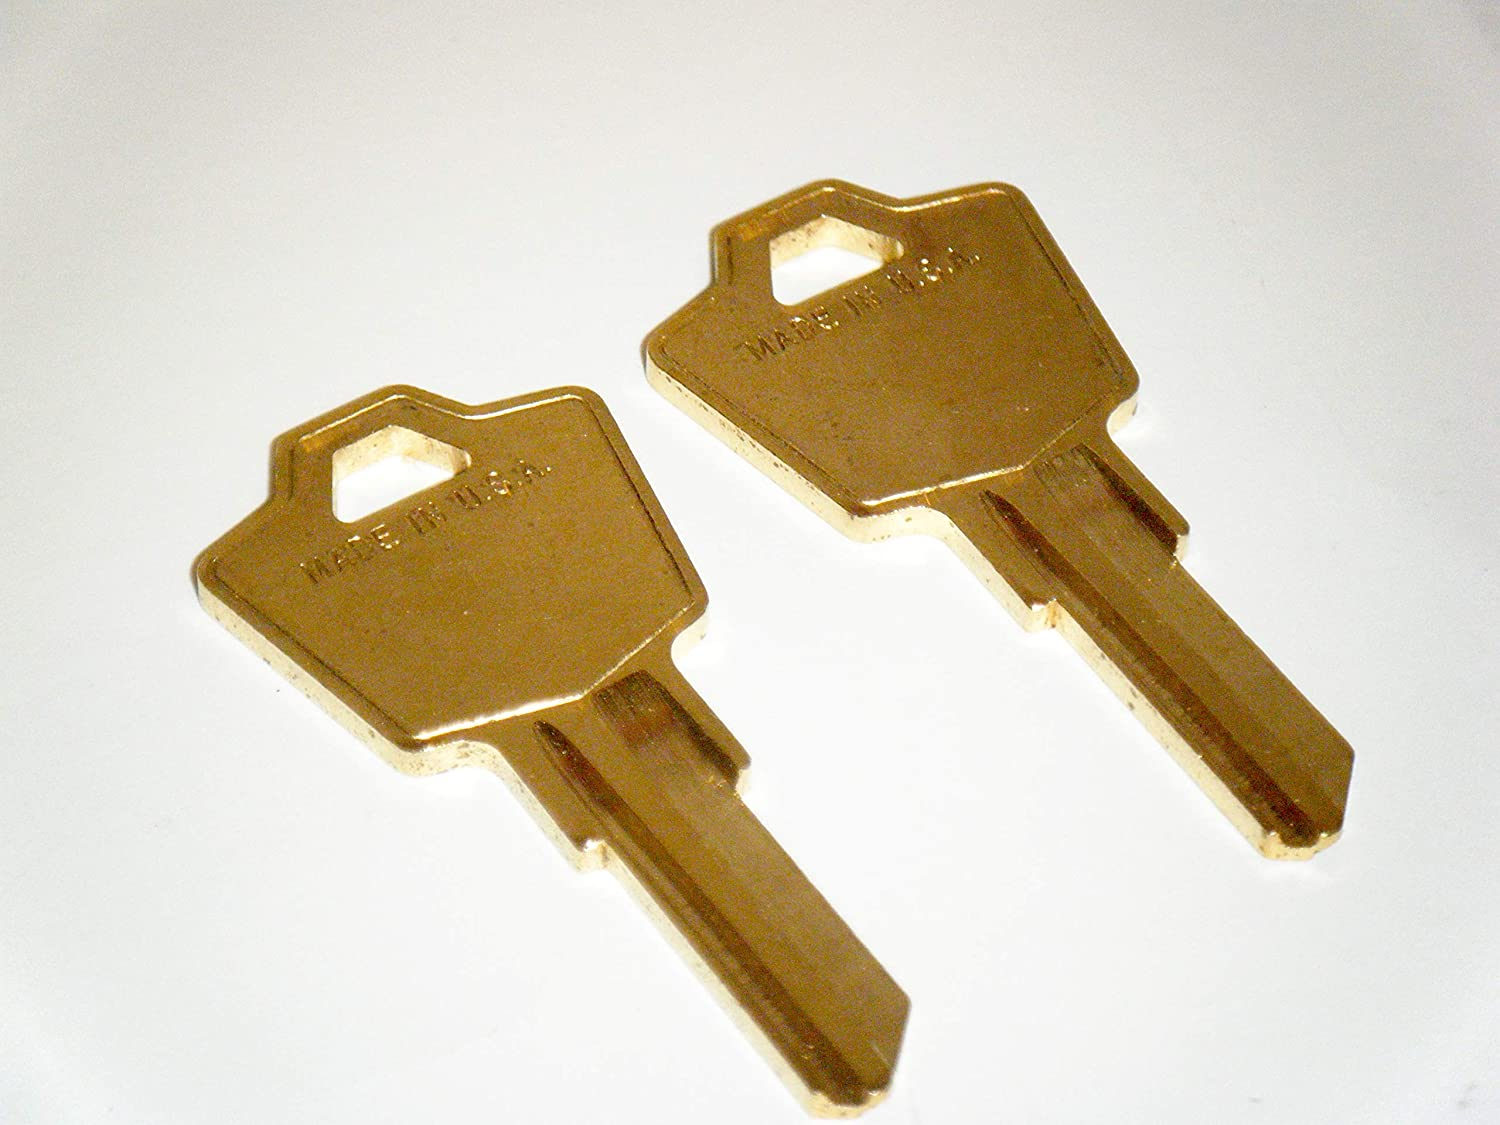 Replacement Keys for HON File Cabinets Cut from 101E to 150E Two ILCO Keys Cut to Lock Number Office Max Office Depot Allsteel (107E)